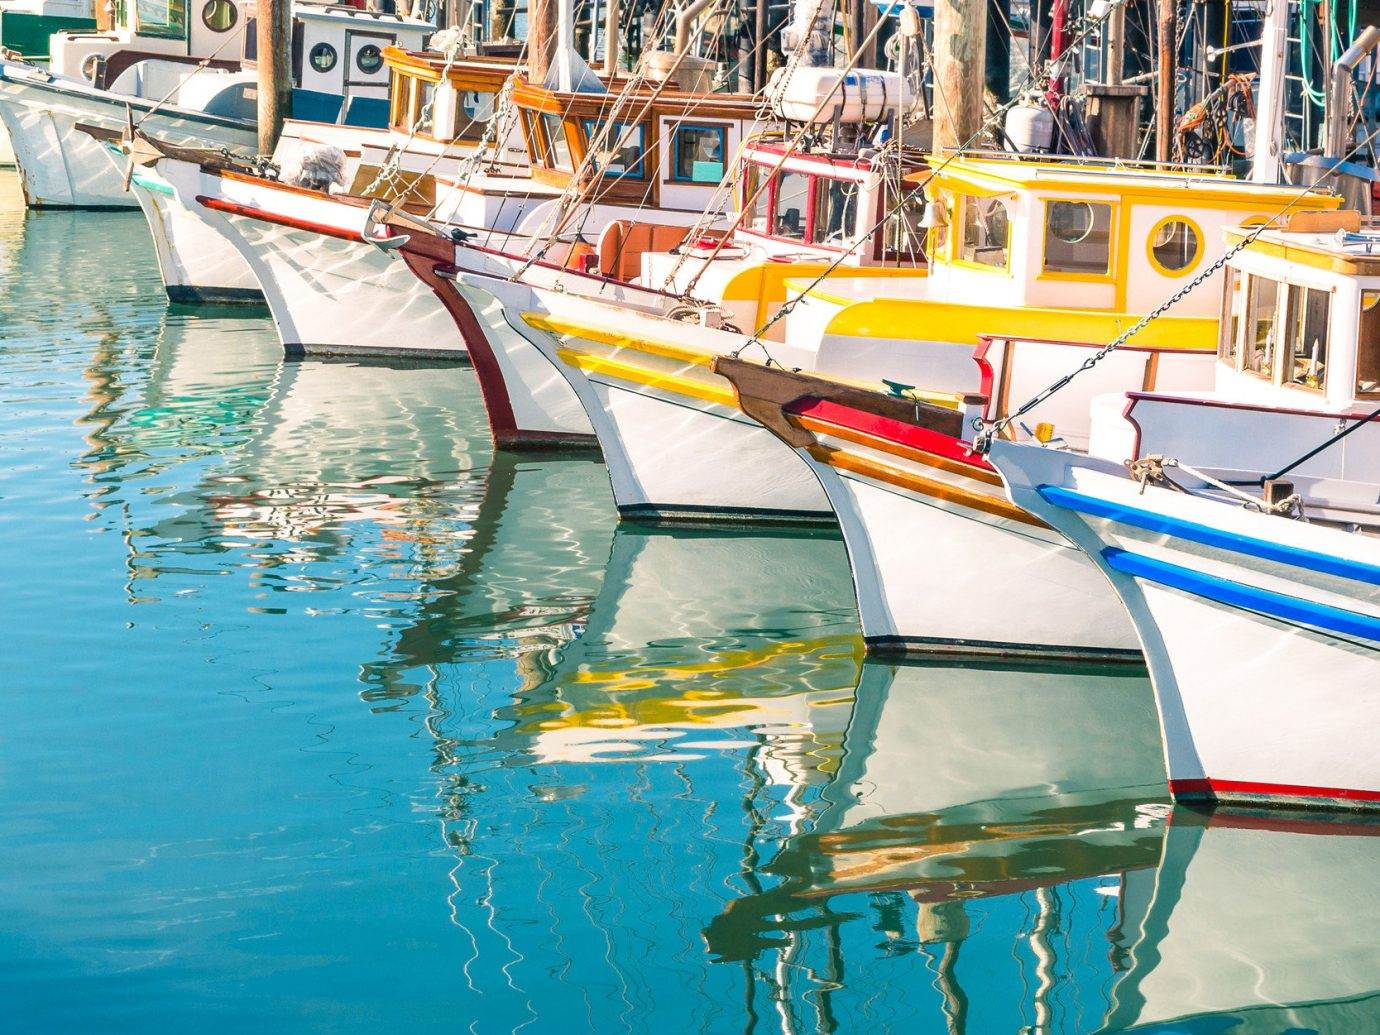 Trip Ideas water Boat outdoor vehicle scene Harbor watercraft rowing boating dock yellow watercraft waterway Sea marina gondola reflection